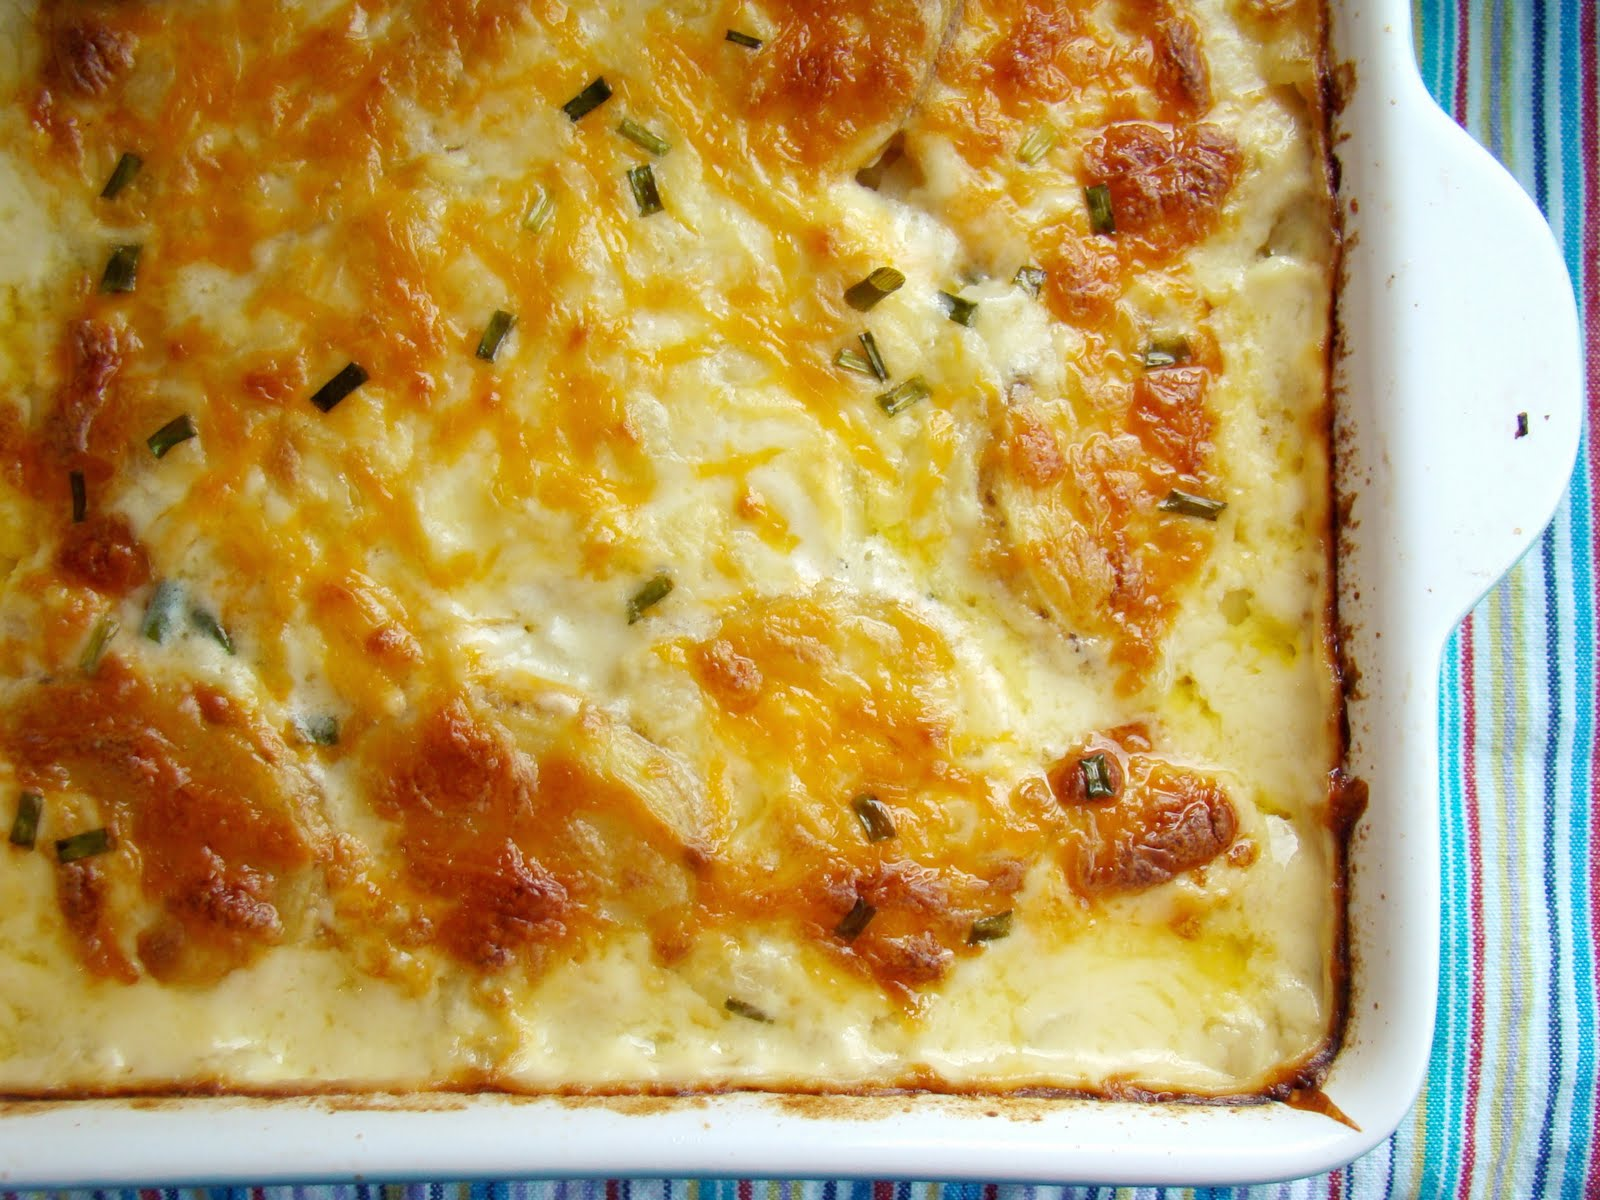 Family Feedbag: Cheesy scalloped potatoes